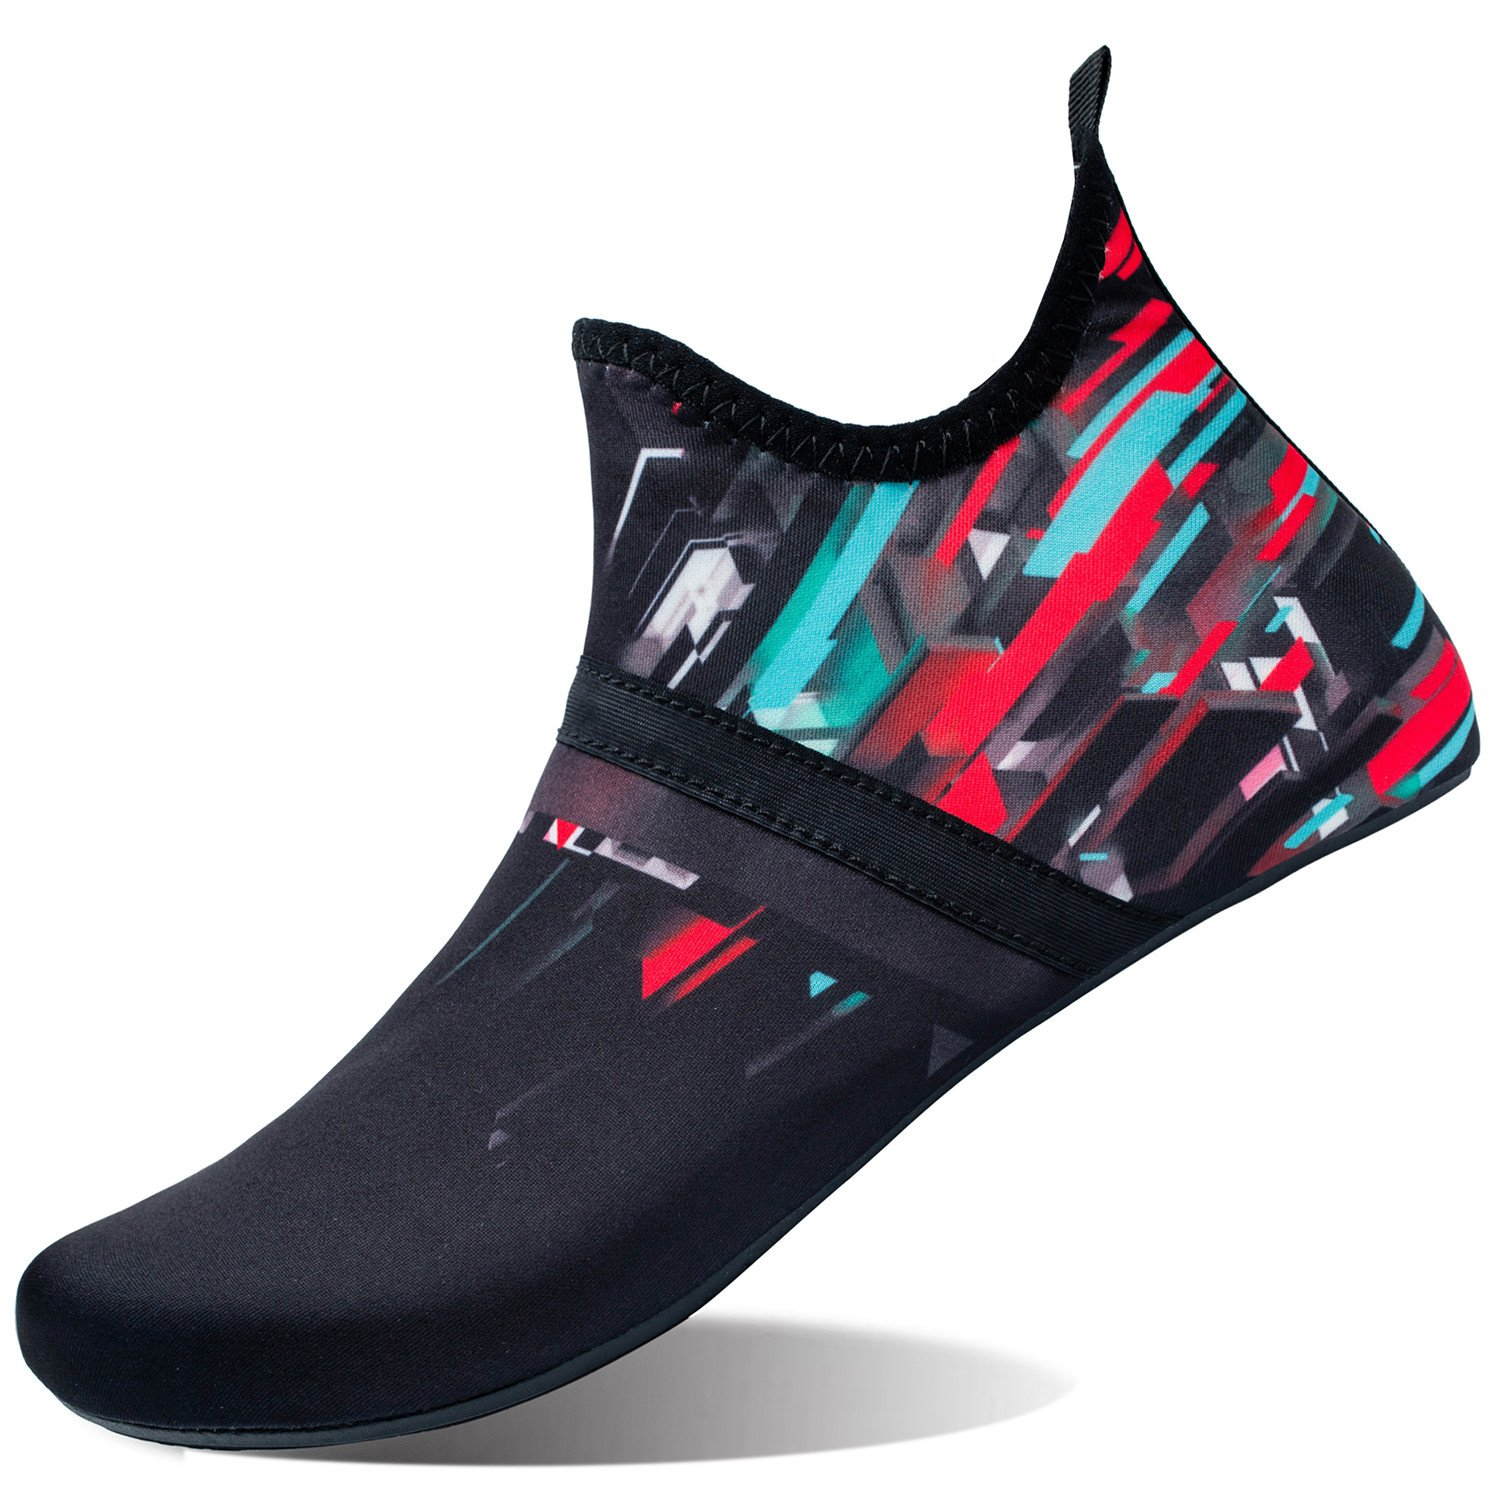 L-RUN Womens Mens Swim Shoes Barefoot Aqua Socks Black_red XXXL(M:12-13)=EU45-46 by L-RUN